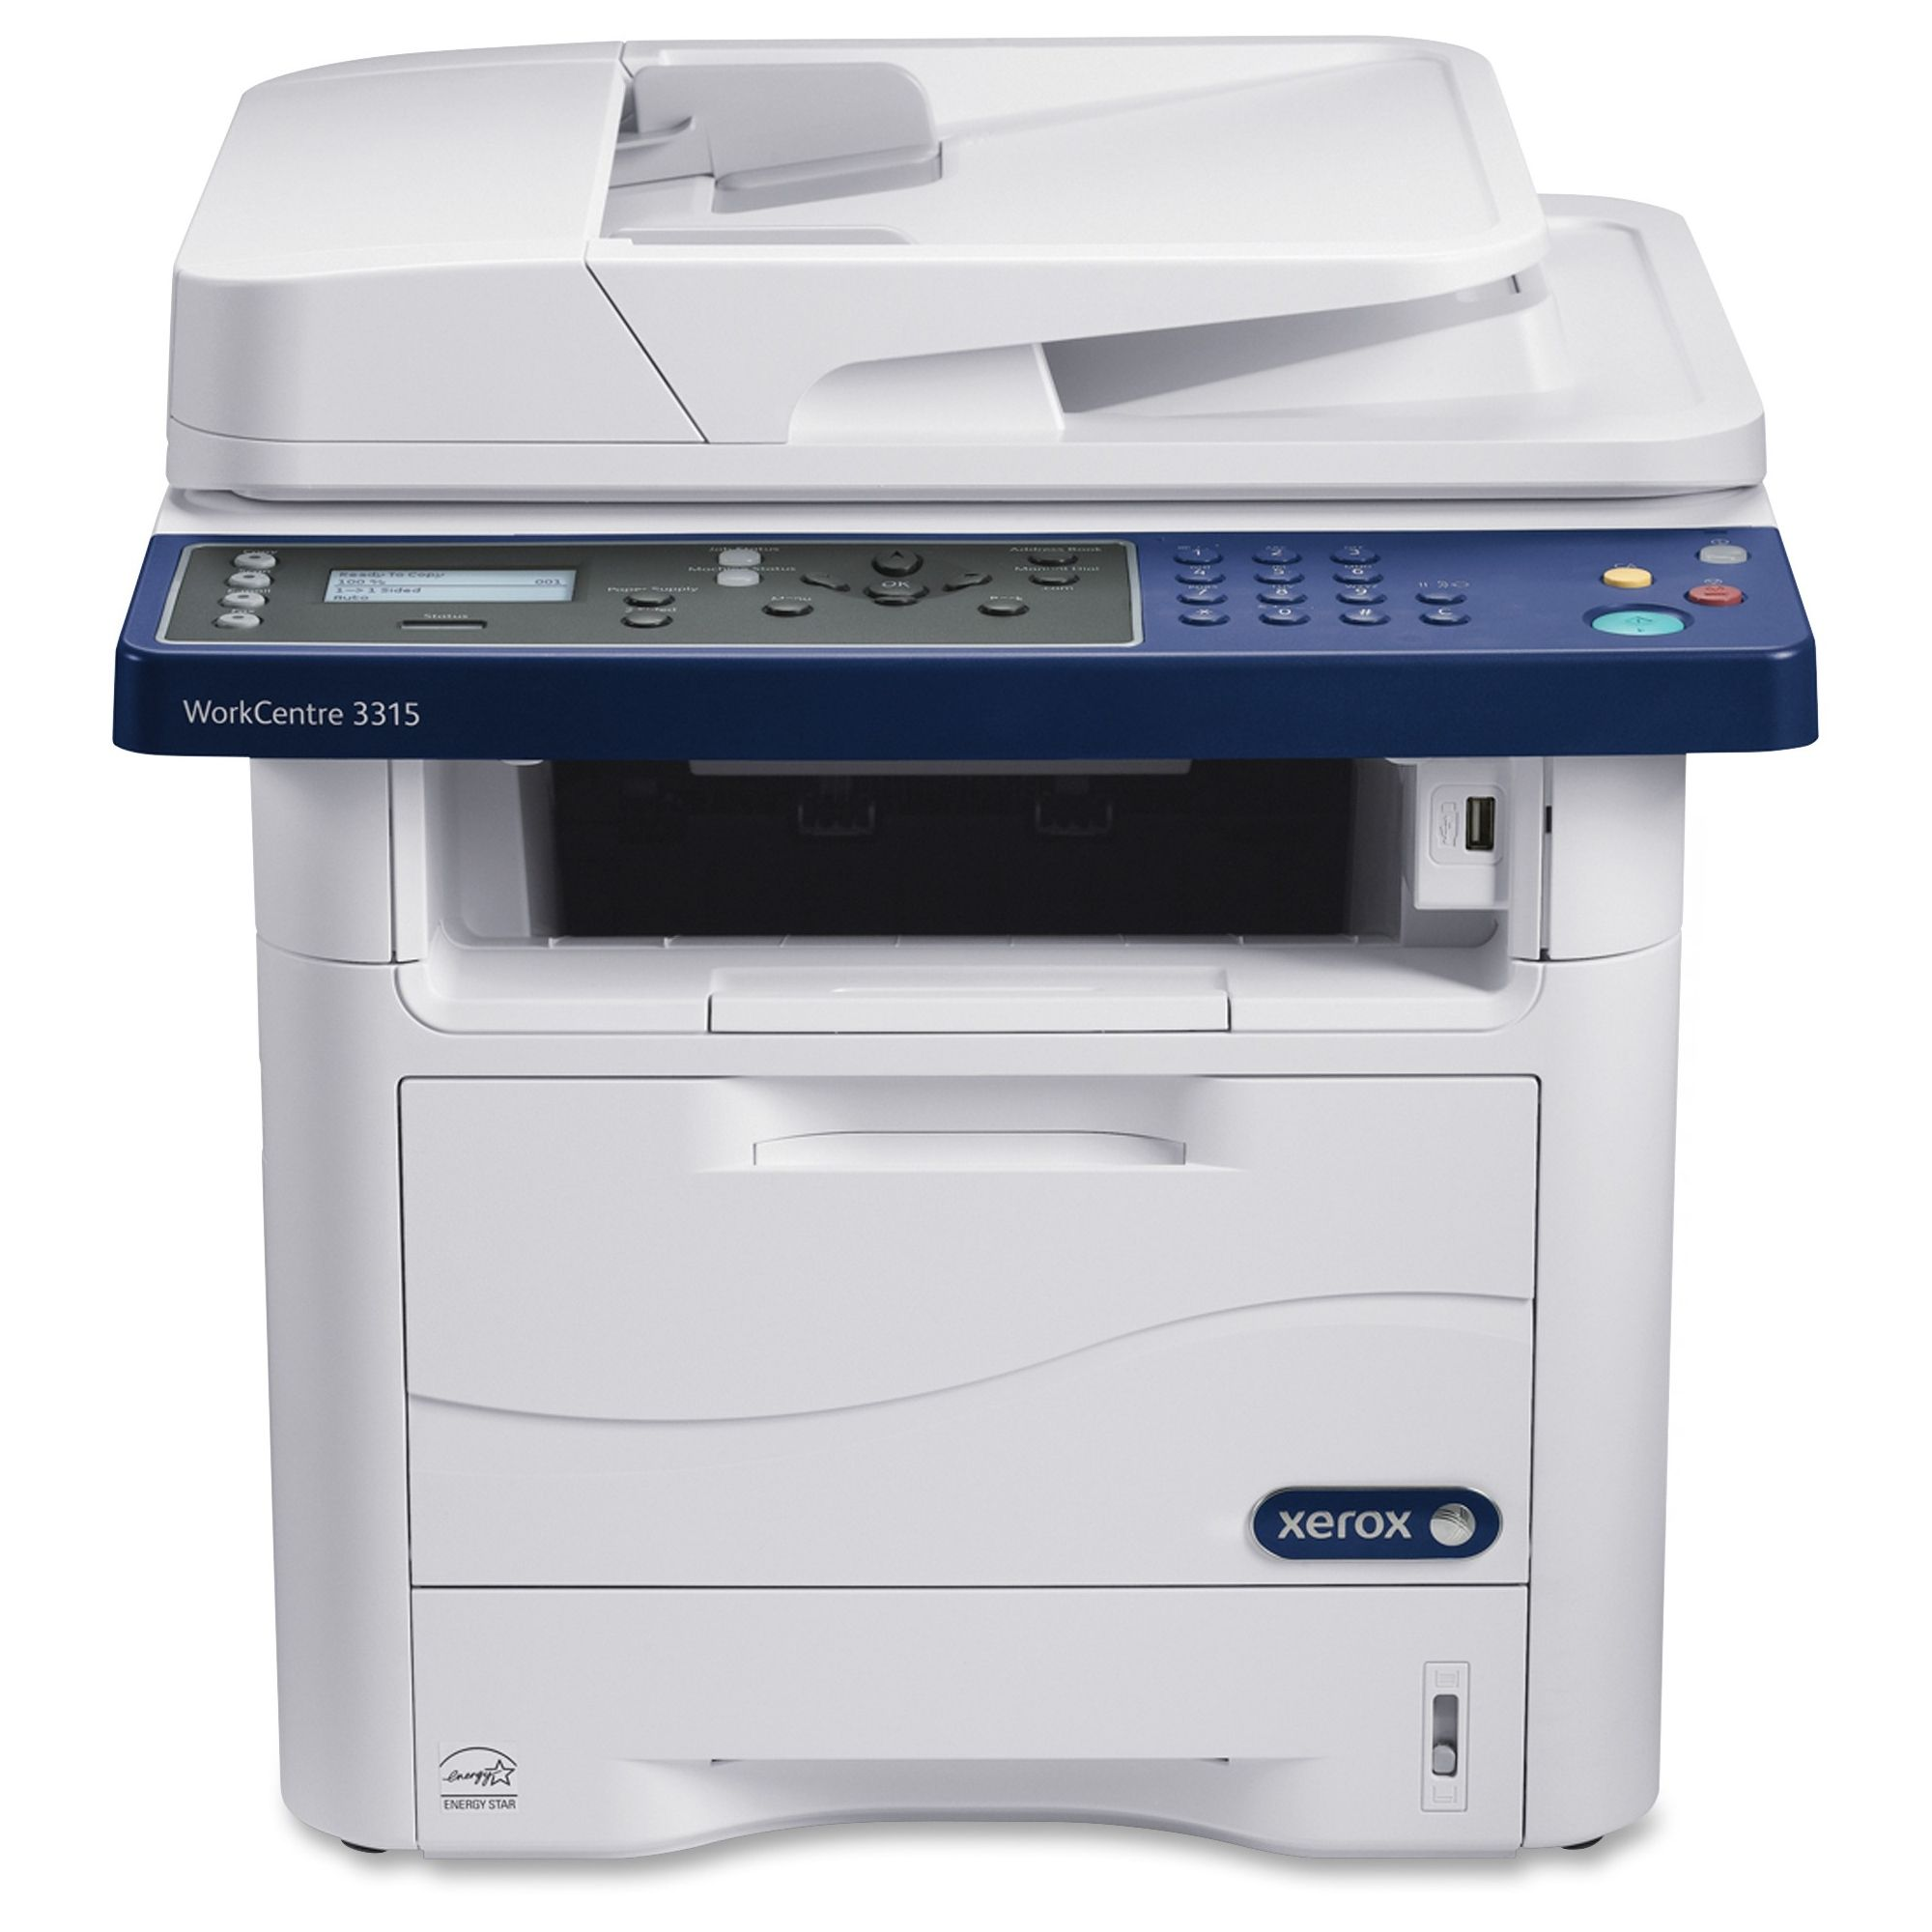 Xerox Workcentre 3315 Dn Laser Multifunction Printer Item